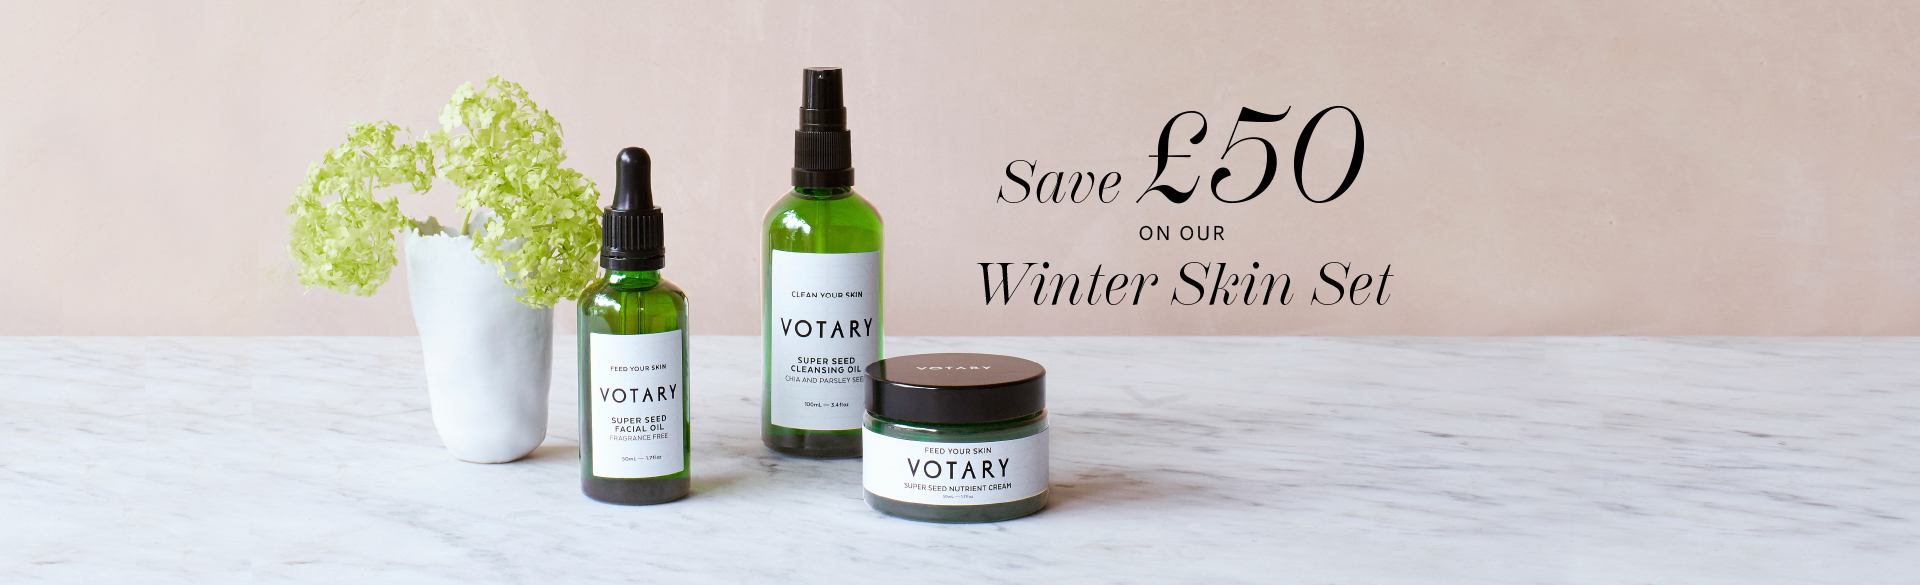 Save £50 on our Winter Skin Set